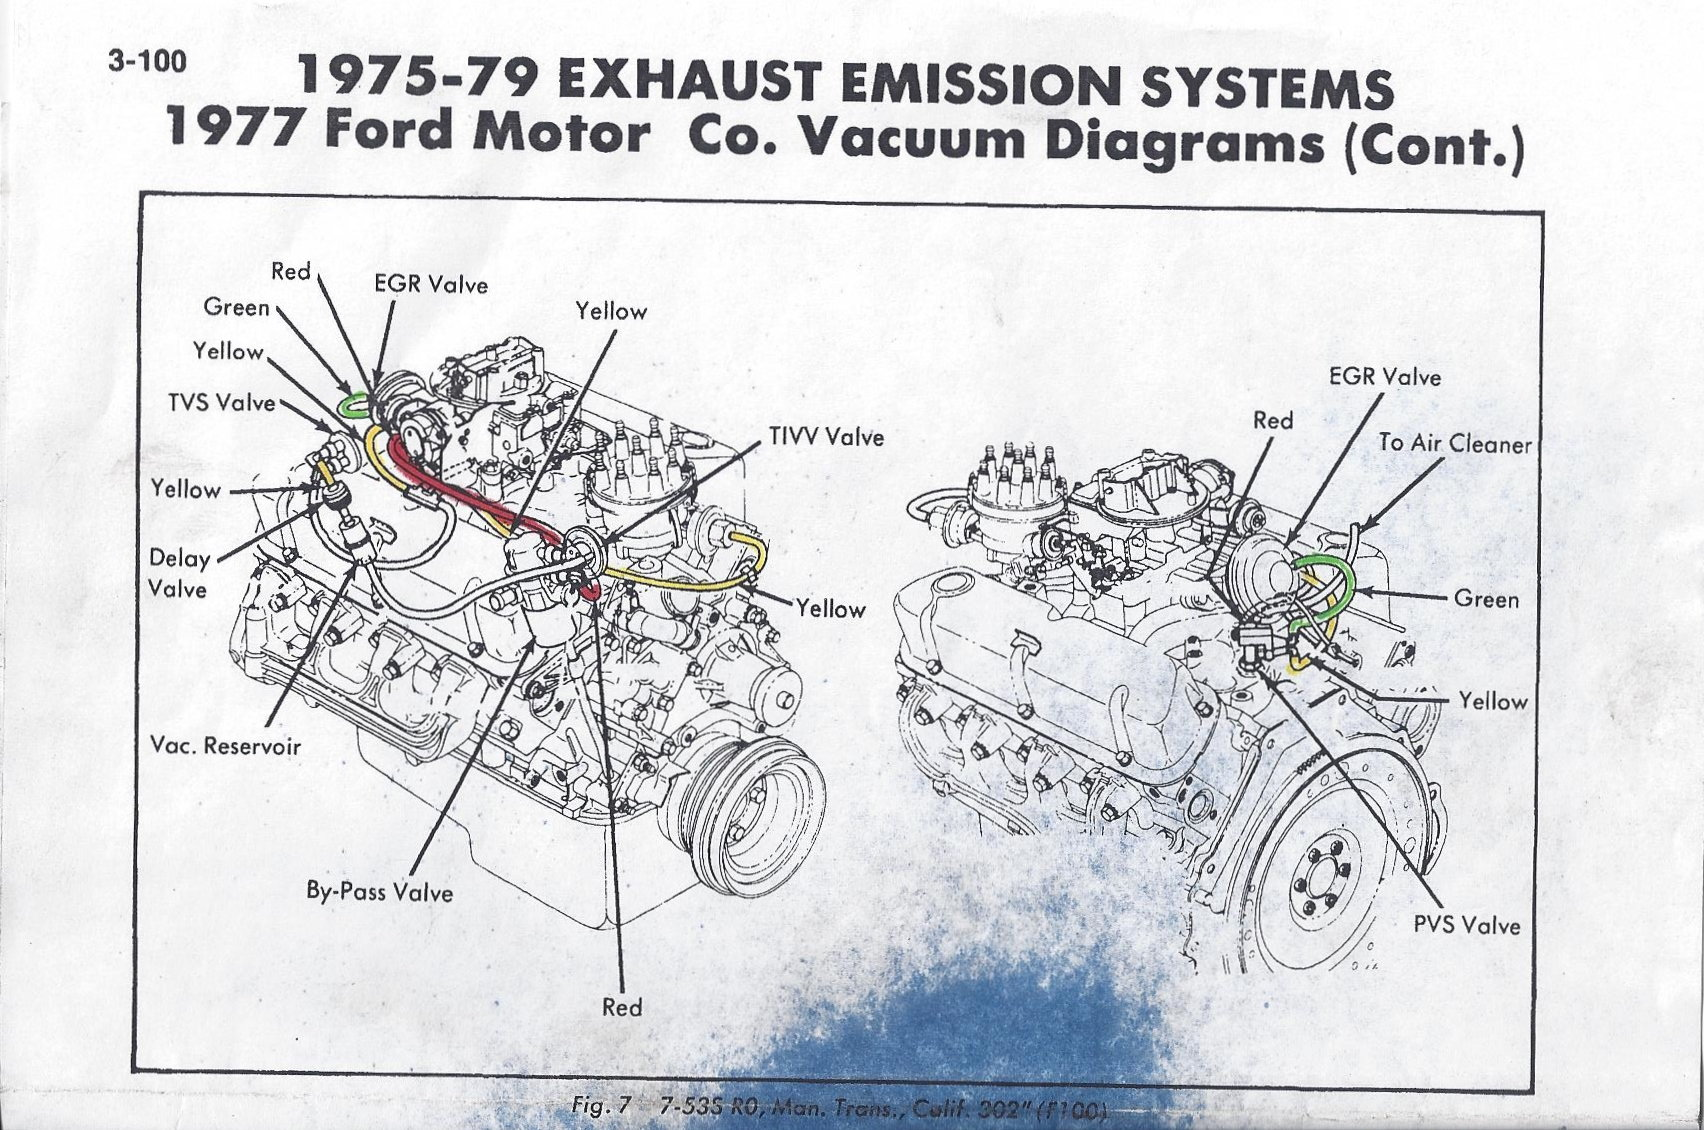 1975 f100 302 engine diagram - wiring diagram page weight-owner -  weight-owner.granballodicomo.it  granballodicomo.it